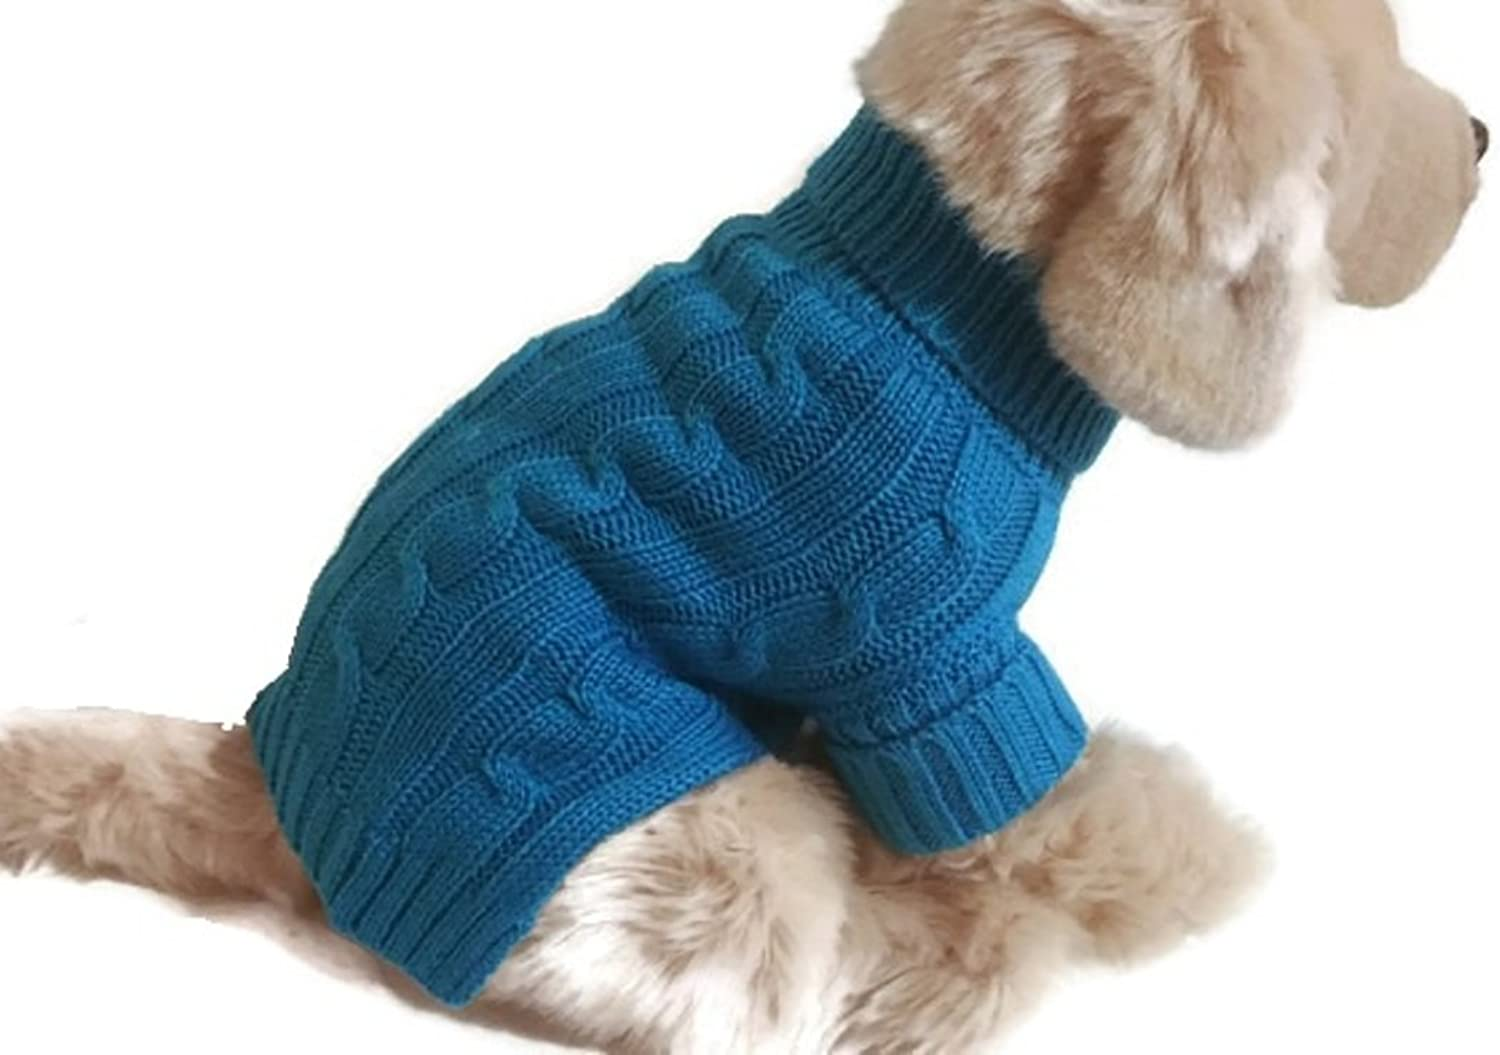 Azure bluee Small Dog Sweater Cable Knit Puppy Clothes Cute Winter Apparel (Large)